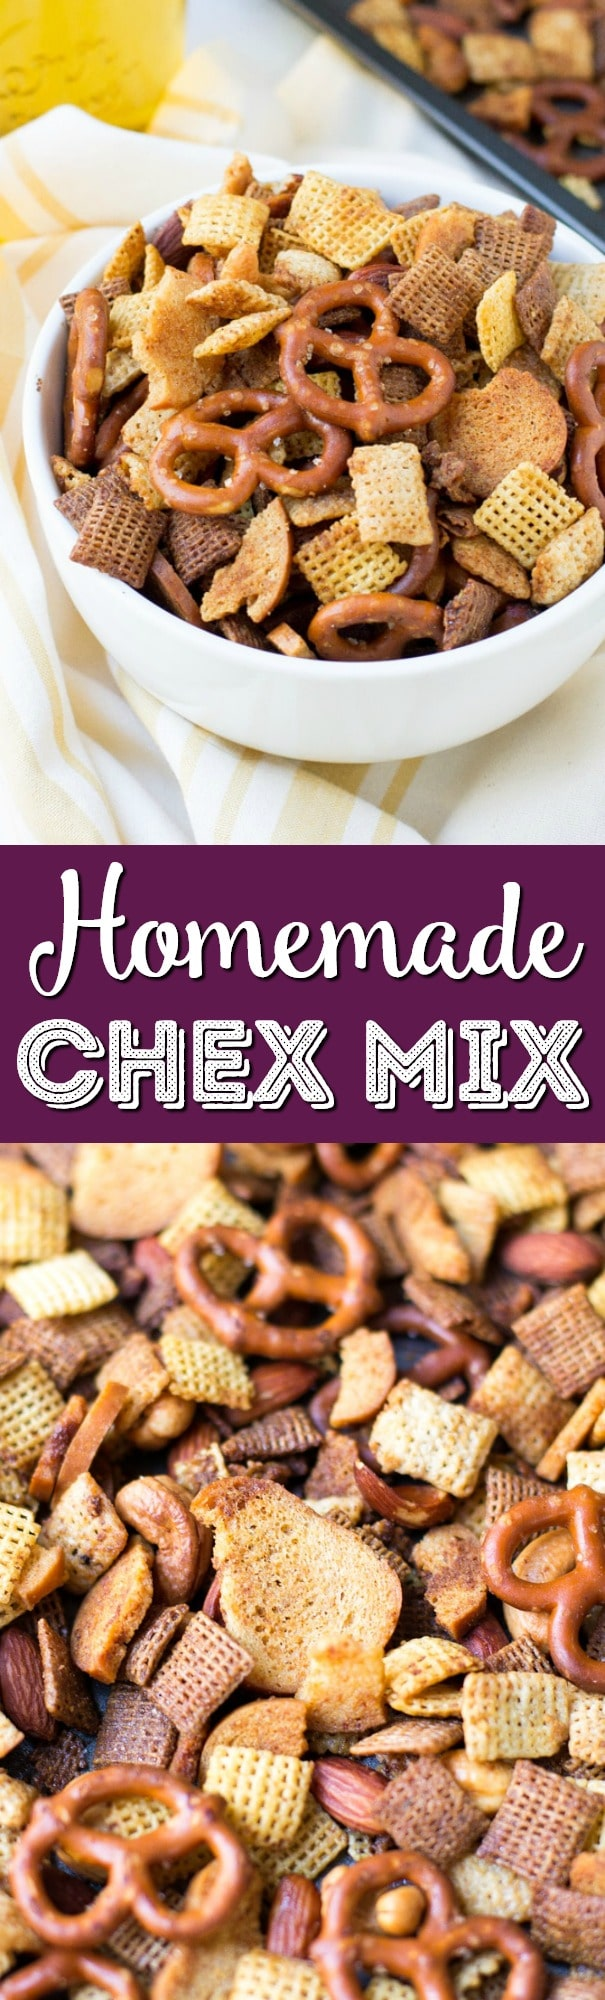 This Homemade Chex Mix is crunchy, buttery and full of flavor this easy party mix is the perfect snack for holiday entertaining! via @sugarandsoulco